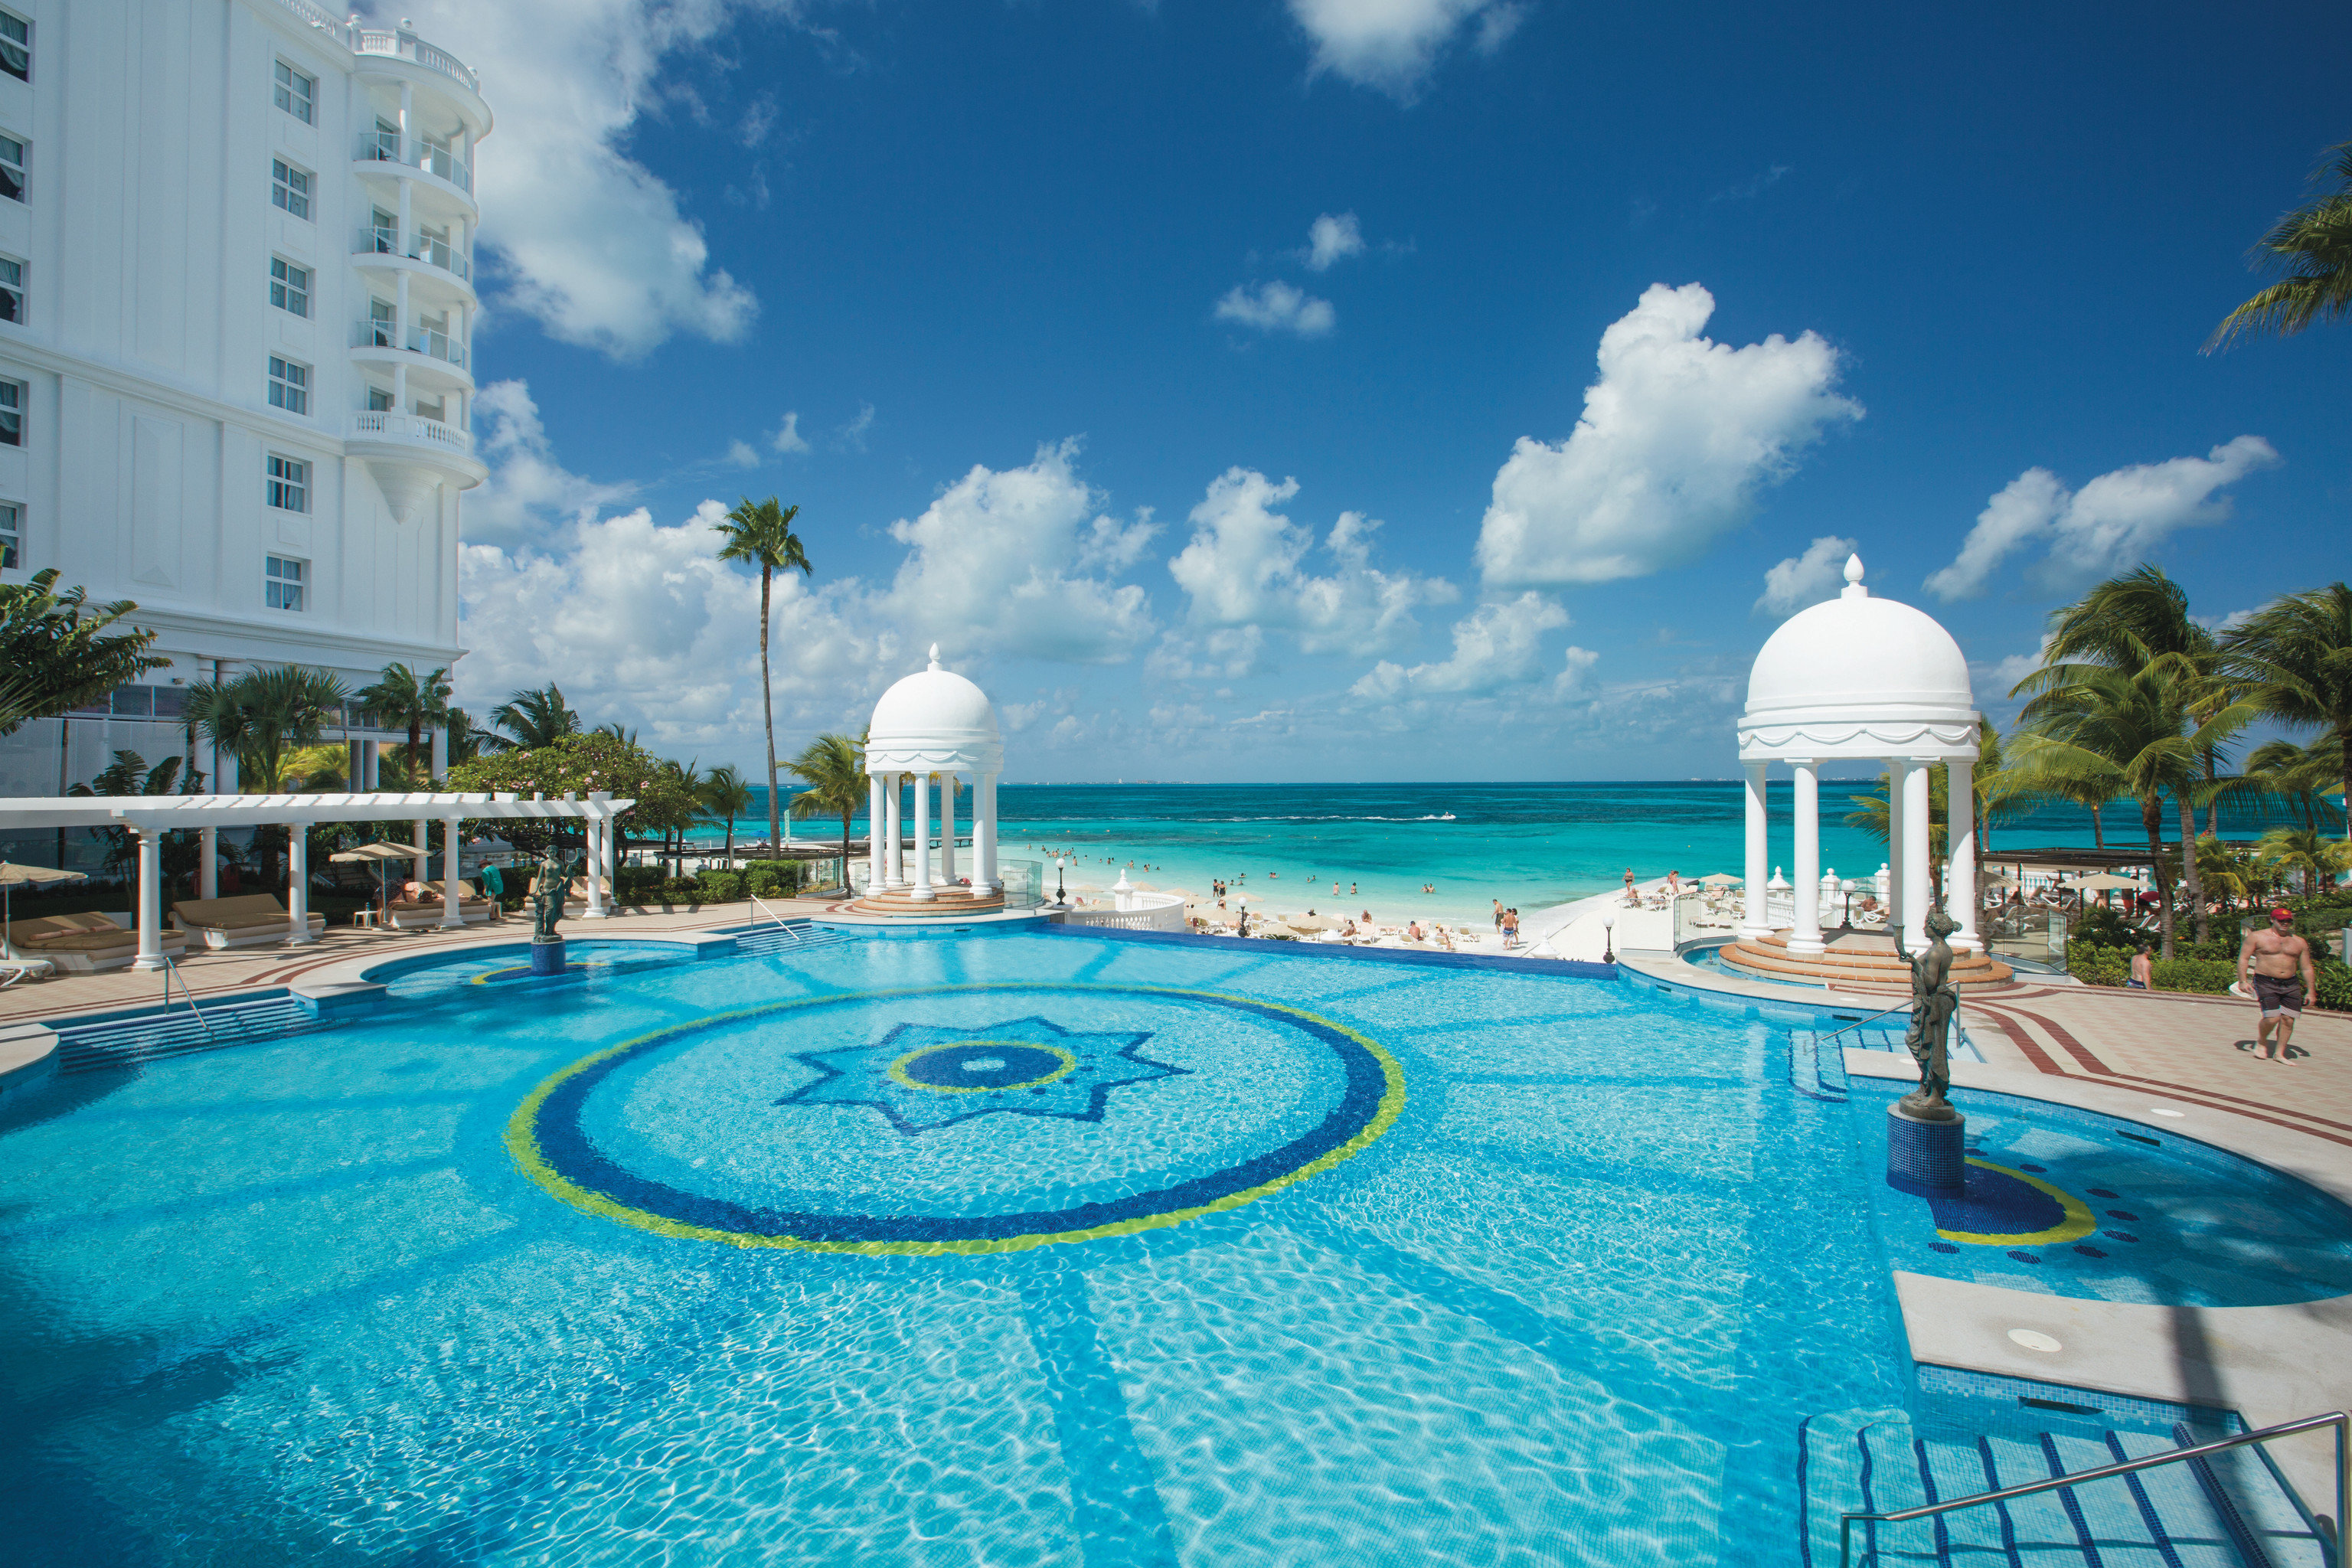 Adult-only All-Inclusive Resorts Cancun Hotels Mexico Resort swimming pool leisure resort town property caribbean sky vacation Sea palm tree water tropics daytime arecales tourism real estate estate Ocean hotel leisure centre condominium coastal and oceanic landforms recreation Lagoon Villa bay